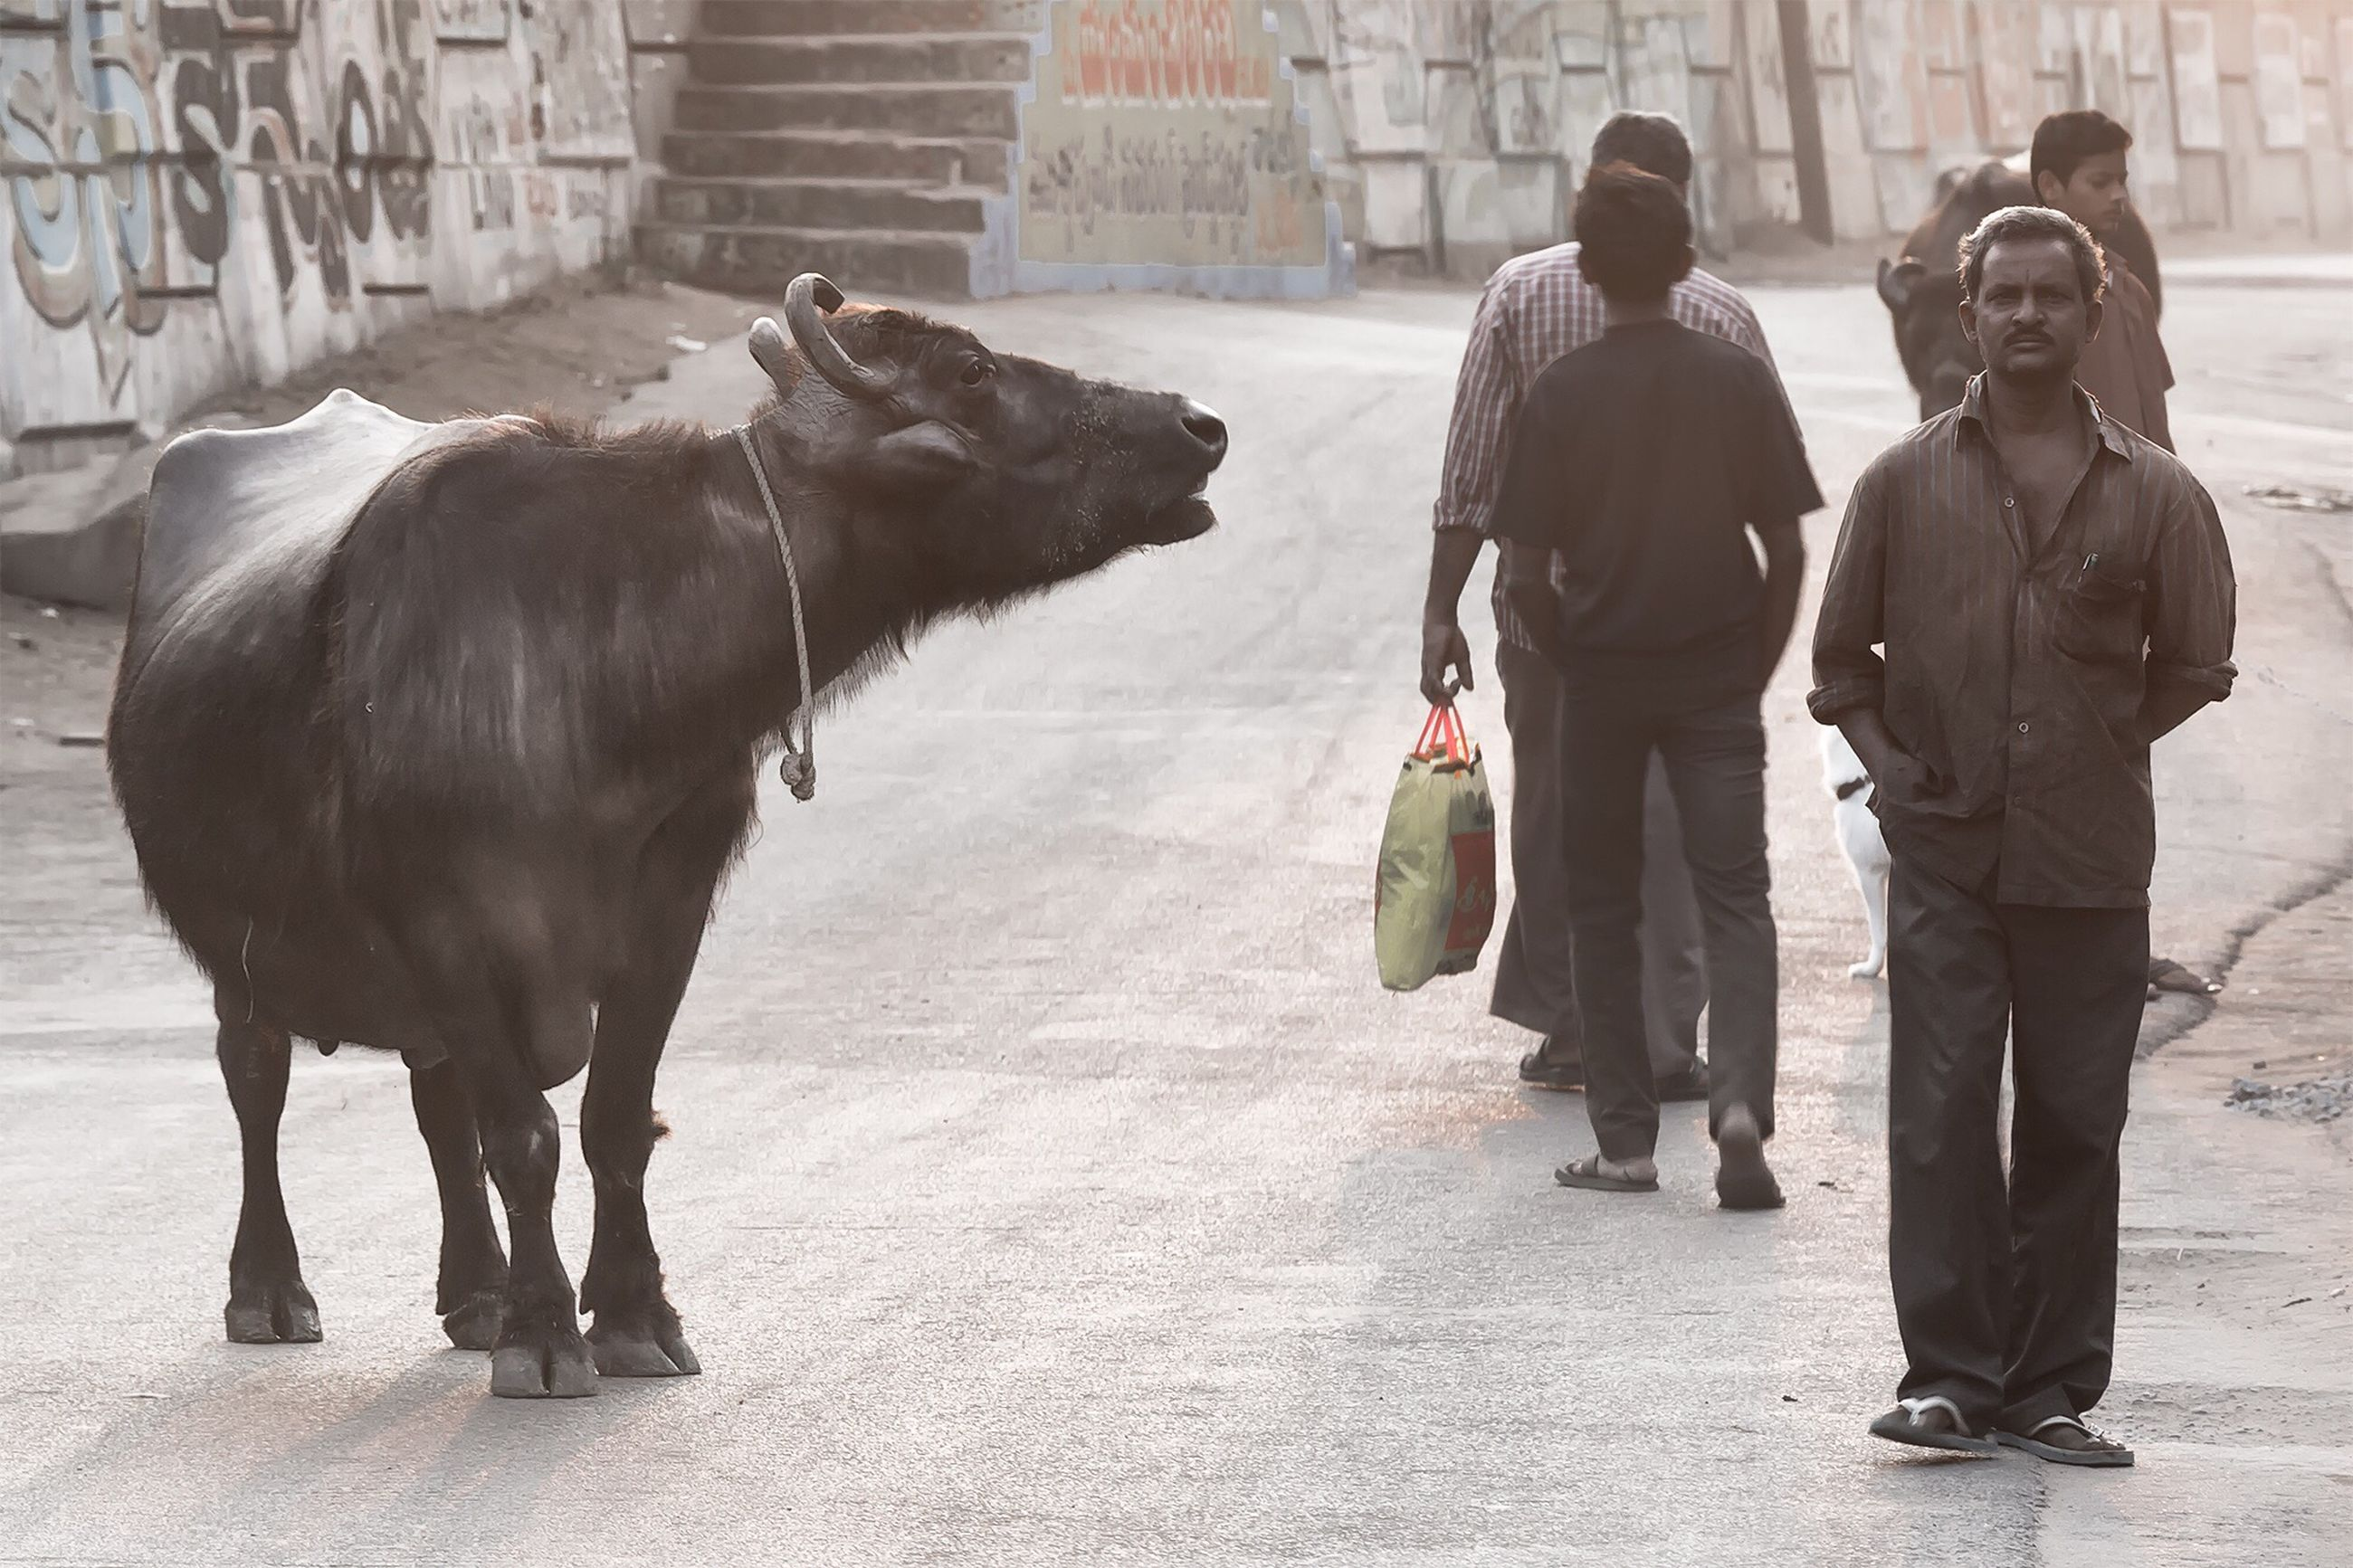 domestic animals, mammal, animal themes, livestock, horse, pets, one animal, working animal, two animals, standing, dog, walking, full length, street, togetherness, men, rear view, herbivorous, cow